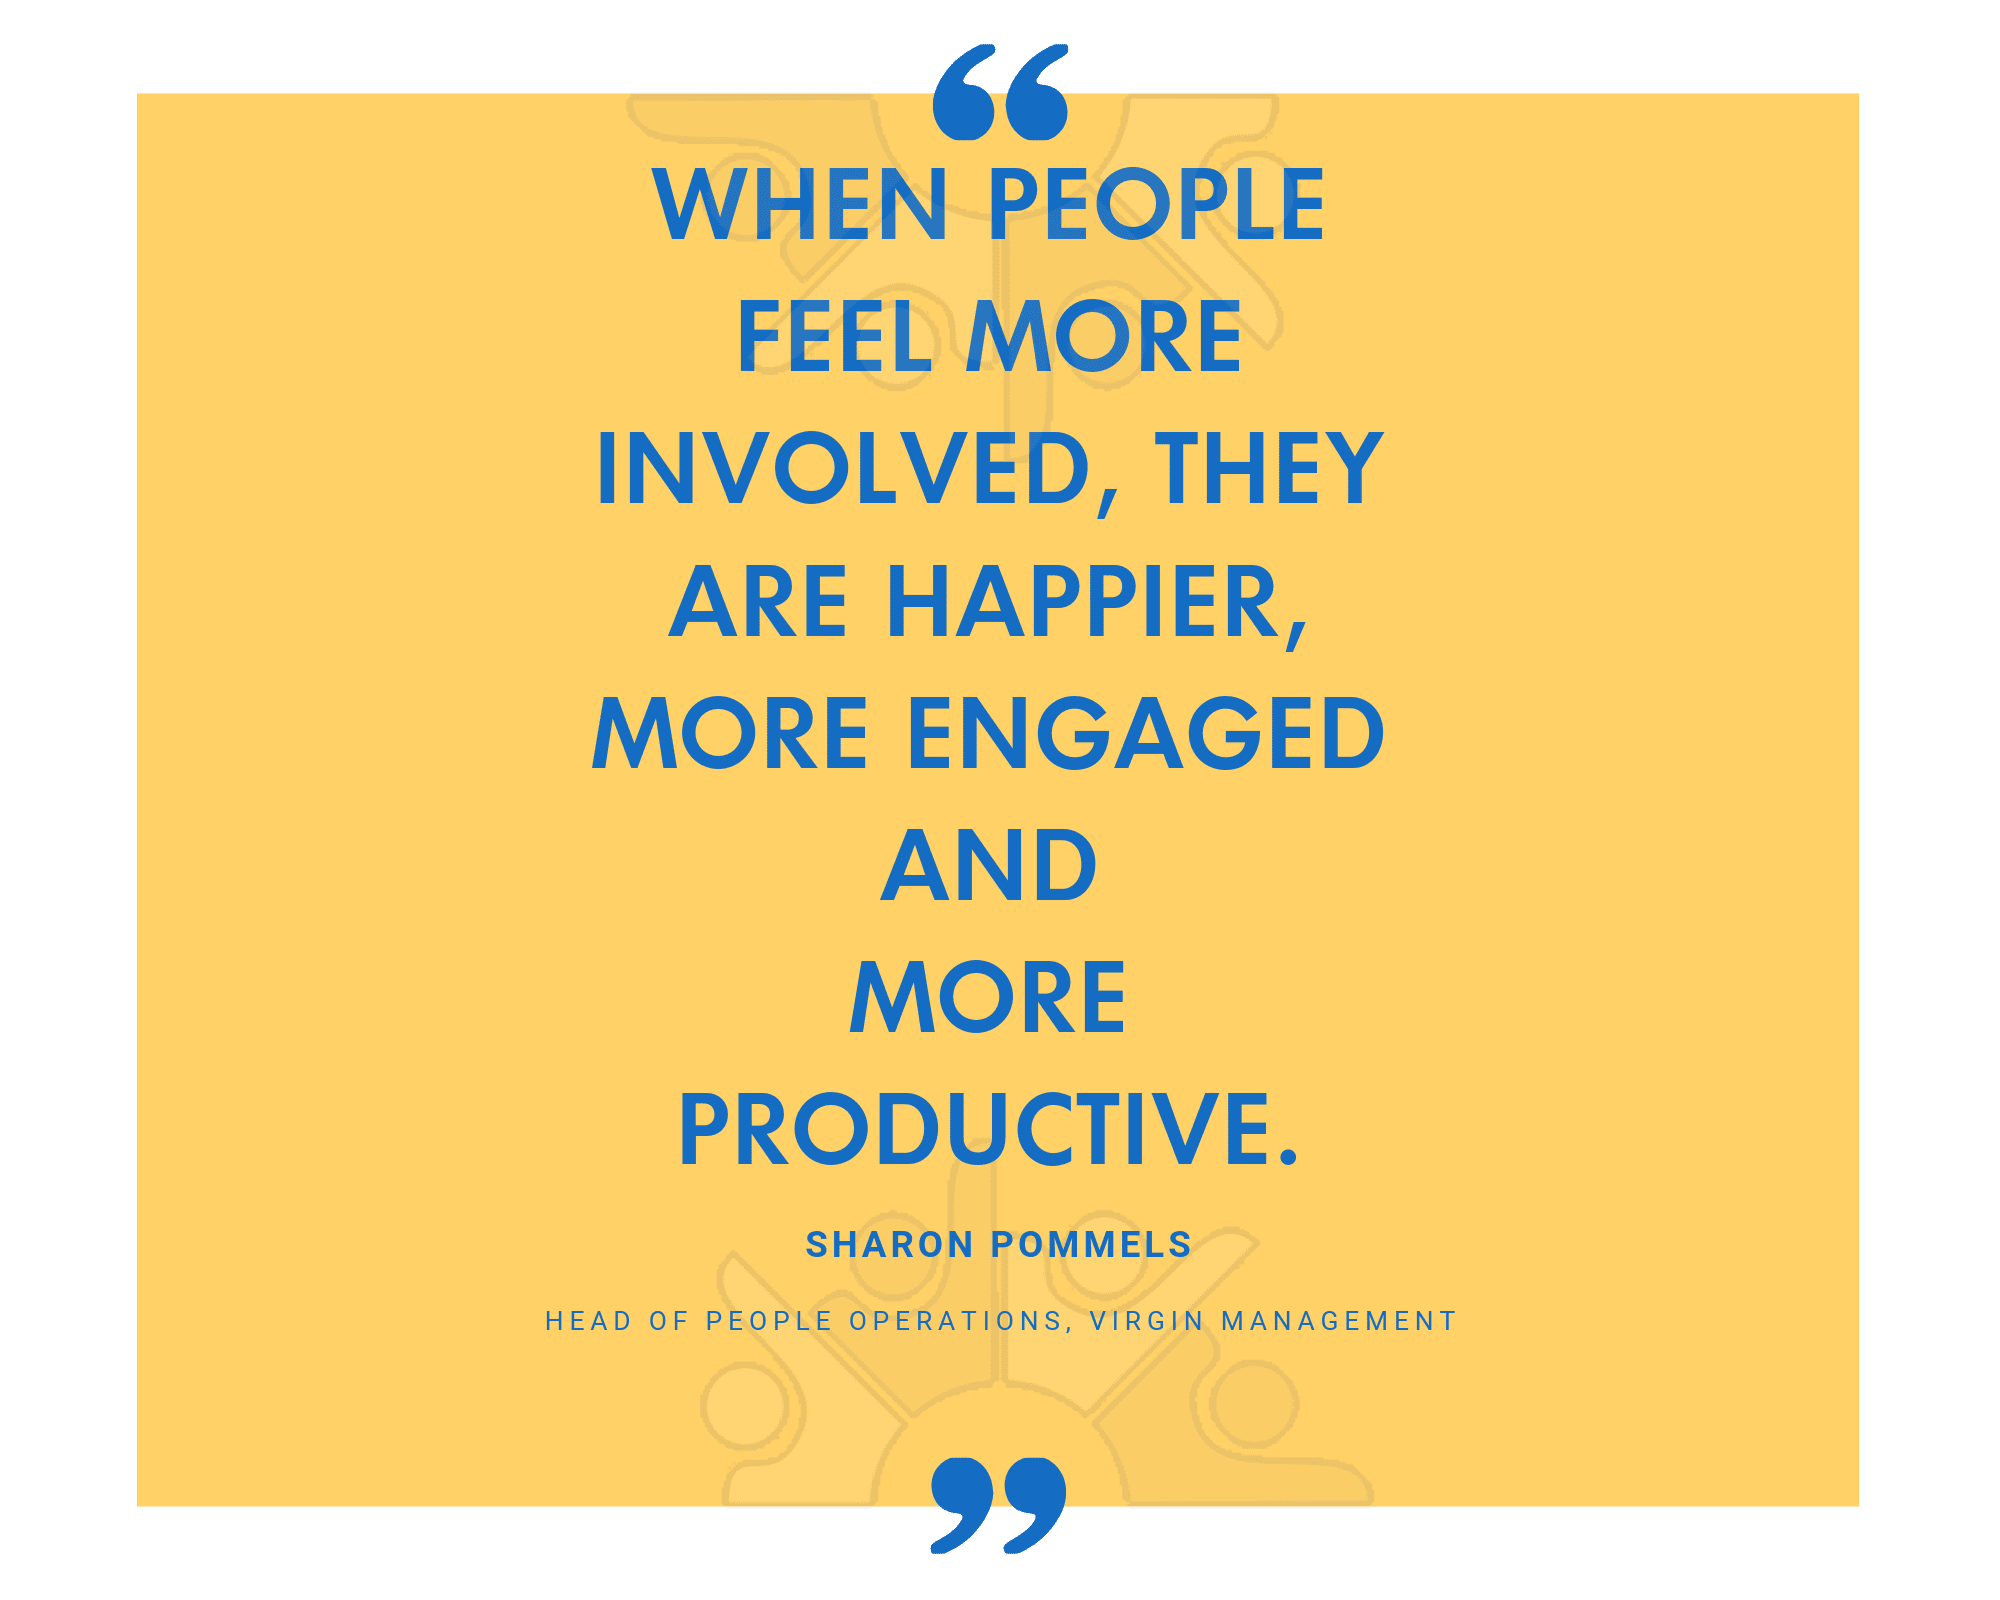 When people feel more involved, they are happier, more engaged and more productive